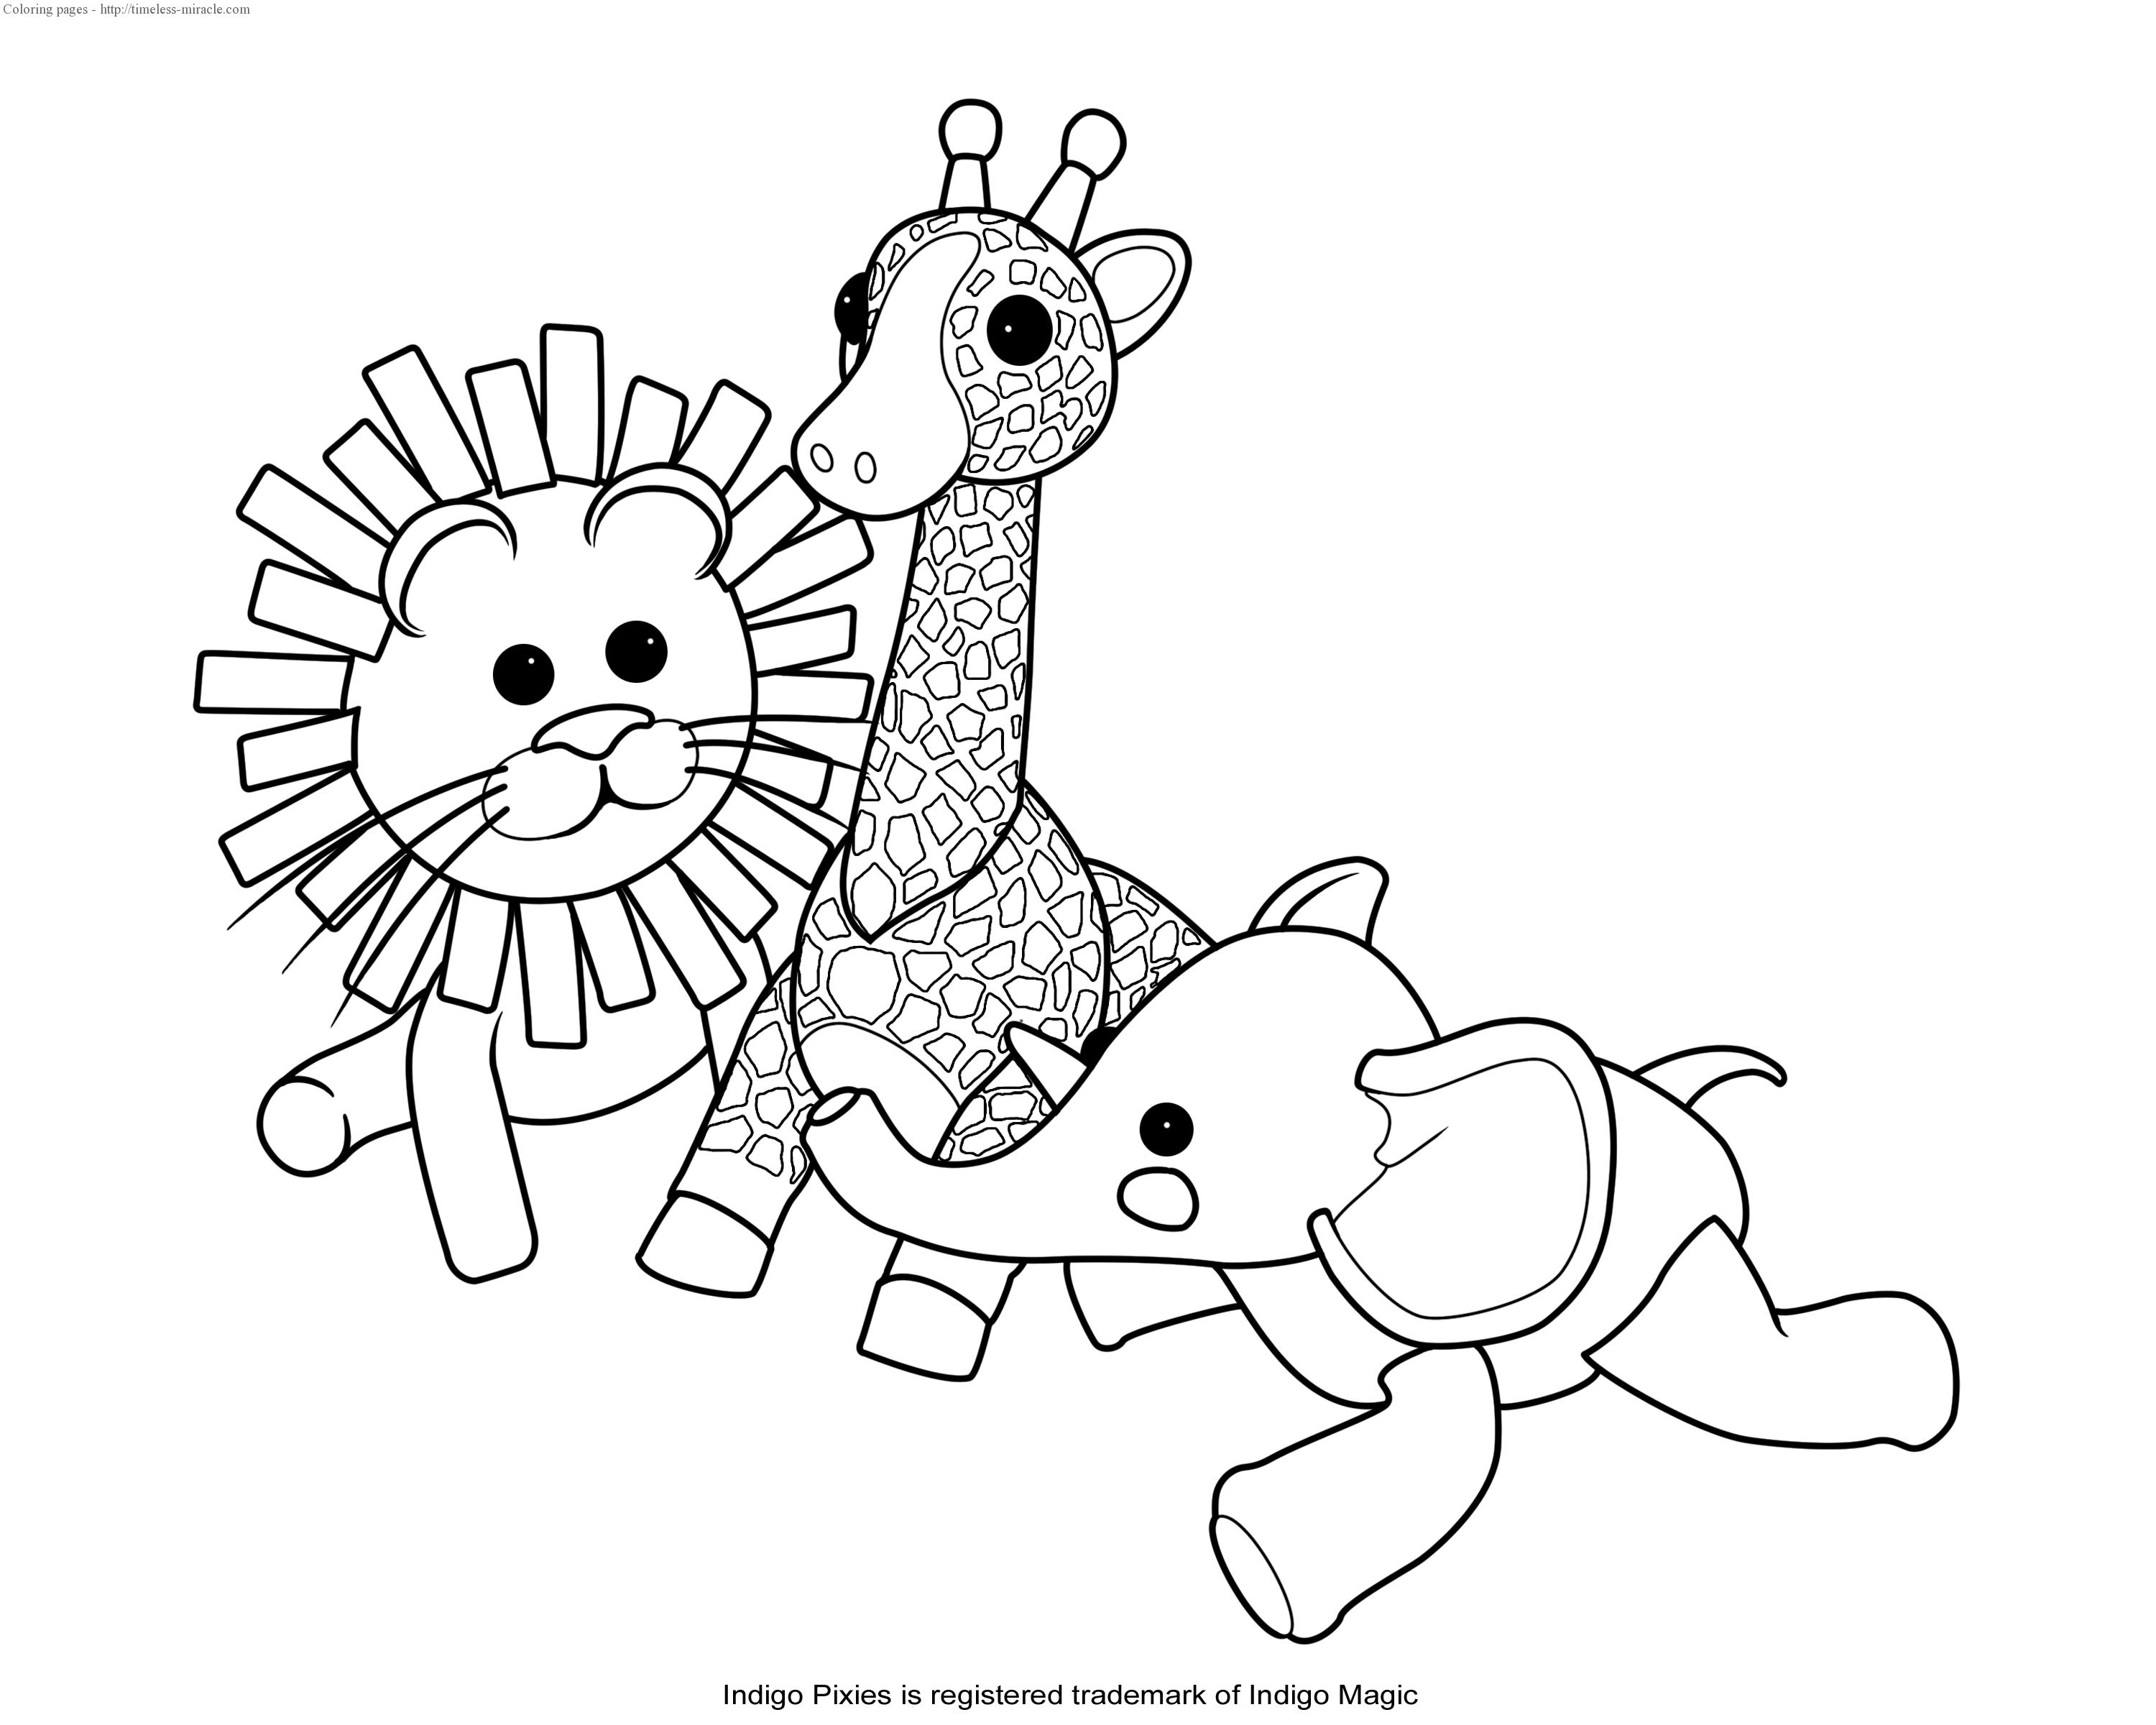 stuffed animal coloring pages stuffed animal coloring pages coloring home stuffed animal pages coloring